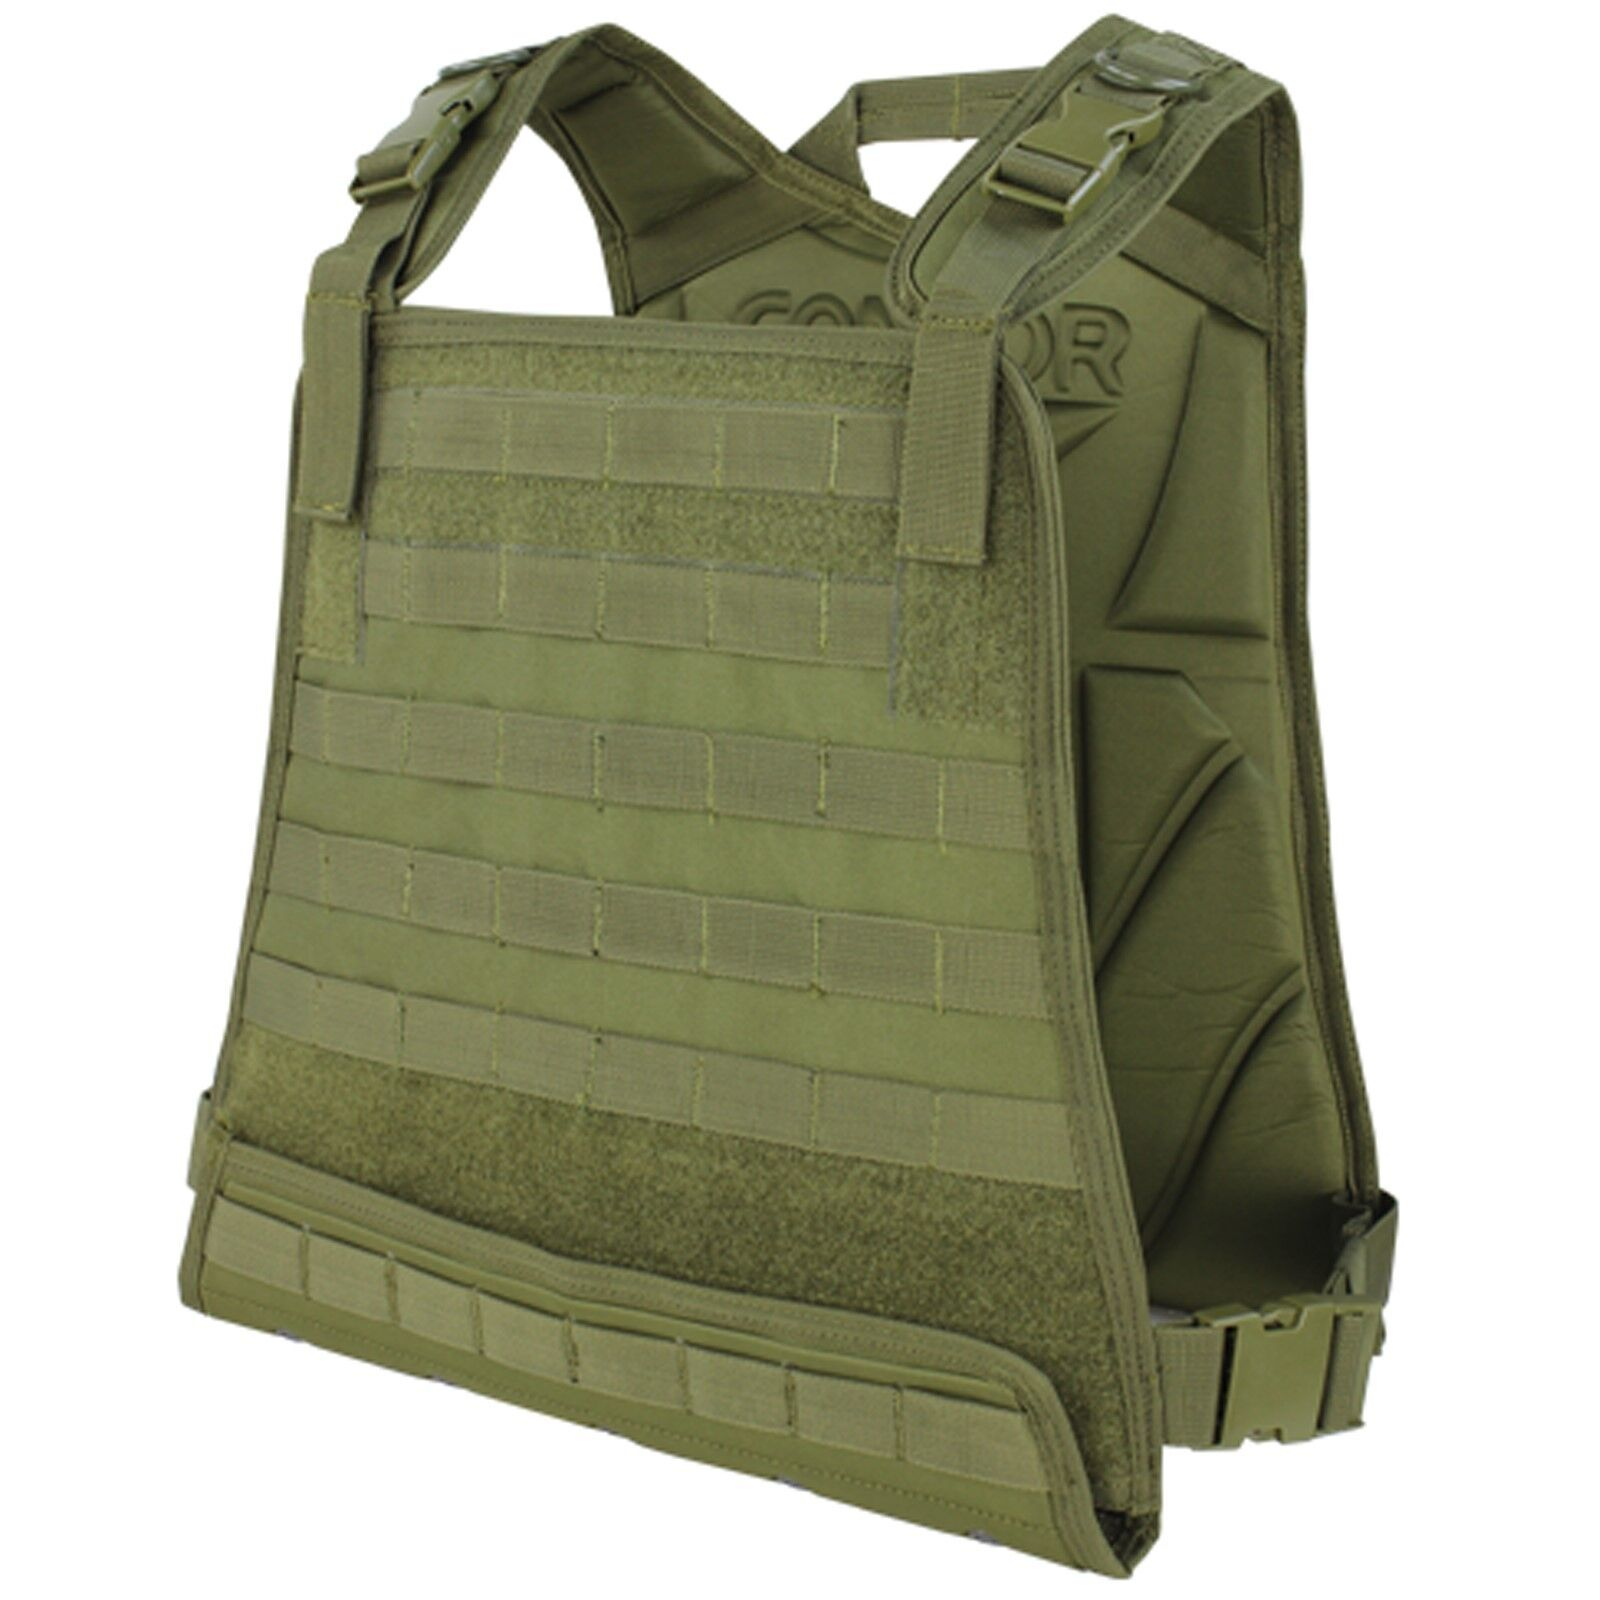 Condor OD Green CPC MOLLE STRIKE Compact Armor Plate Carrier  Vest Rig  get the latest